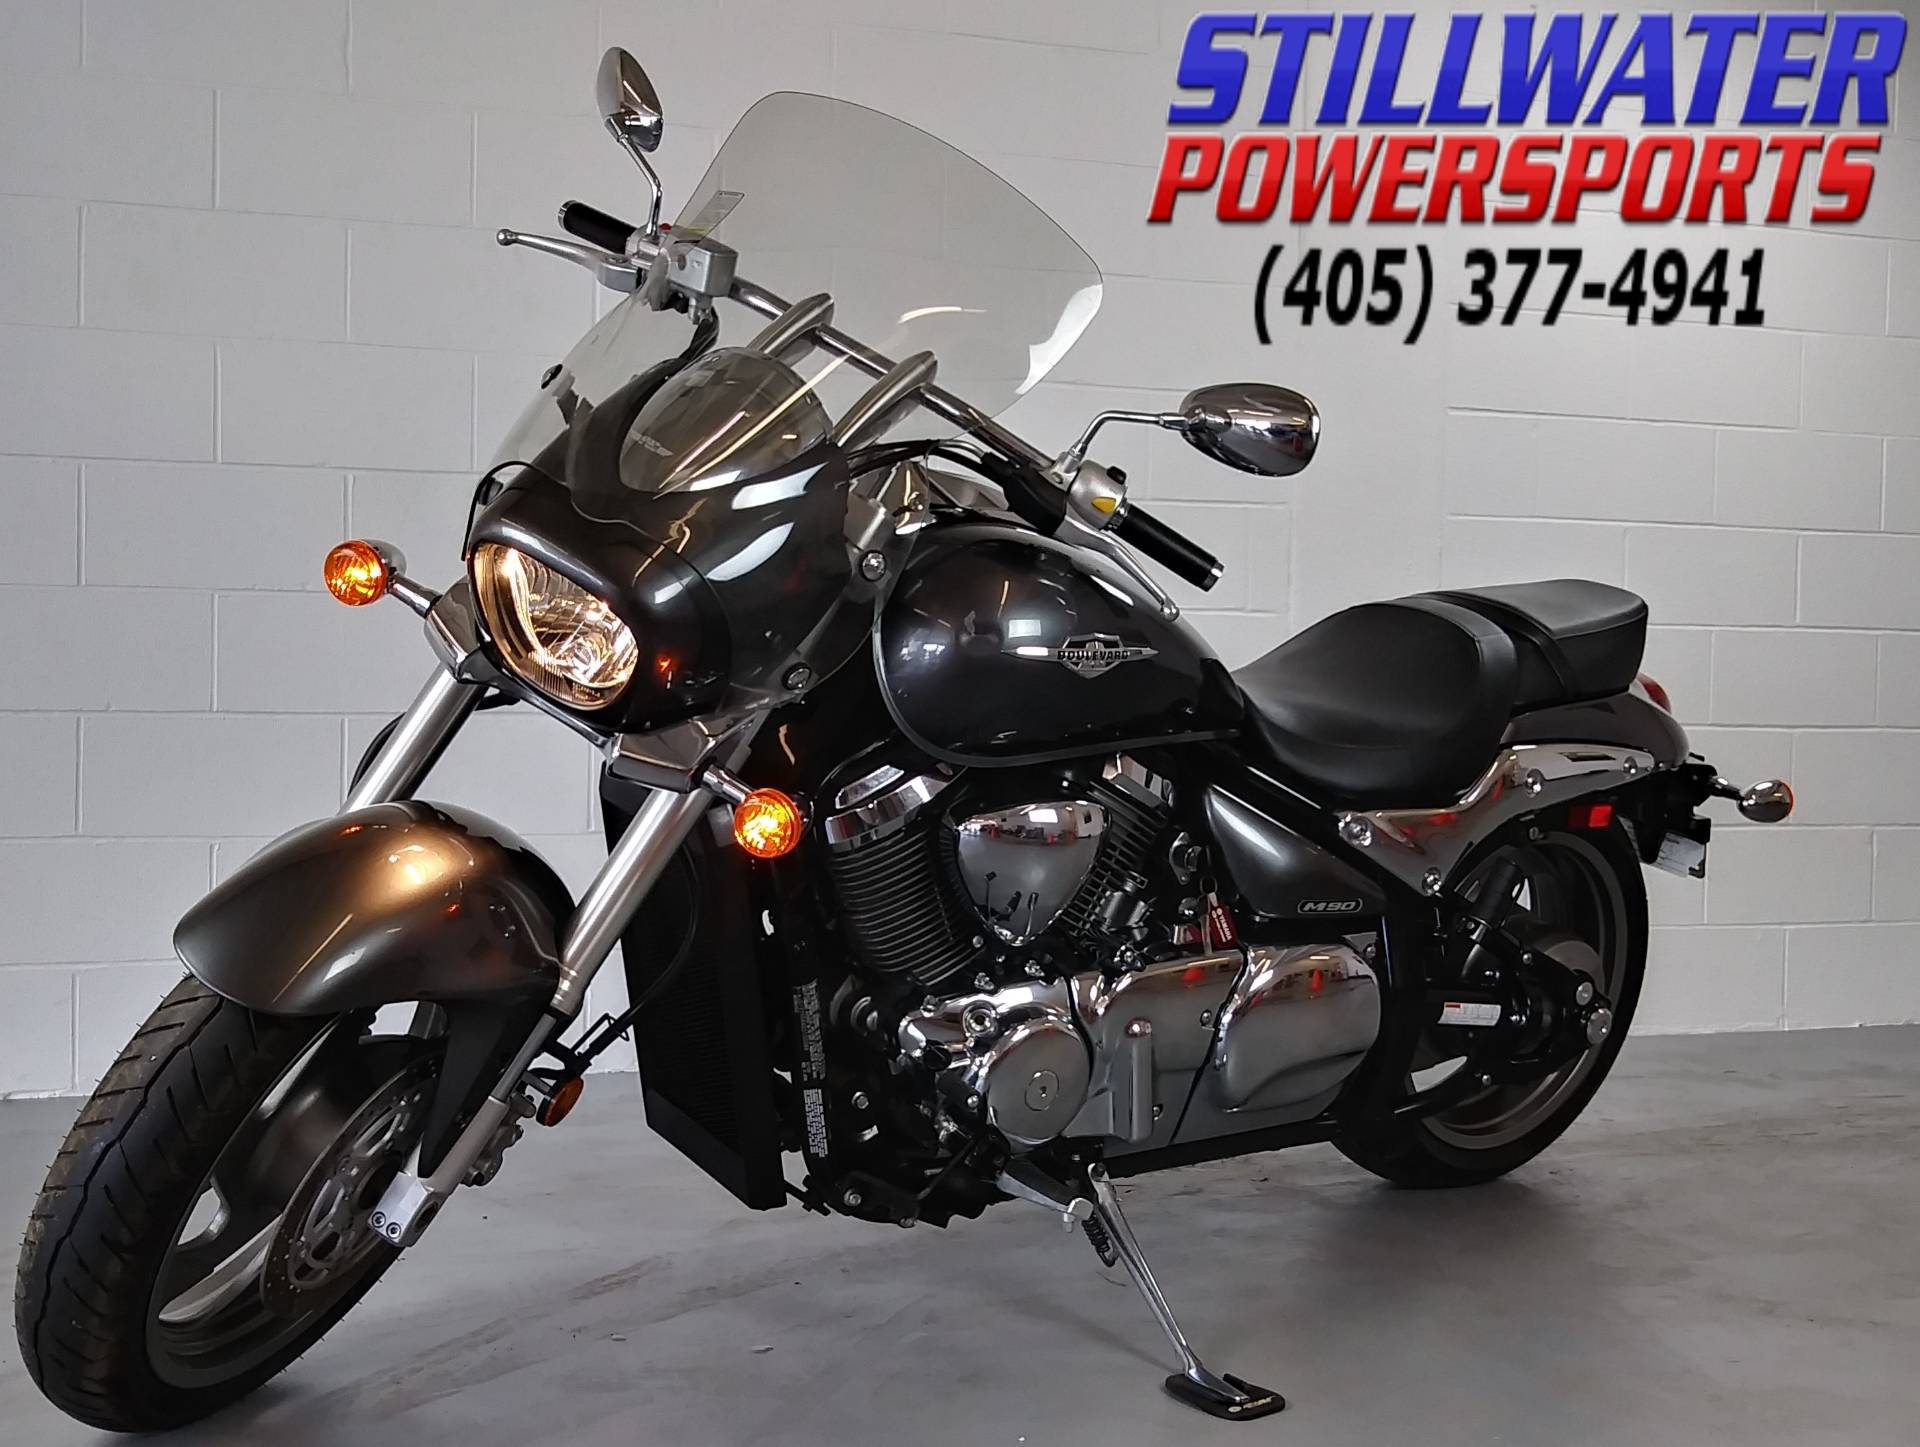 Used 2013 Suzuki Boulevard M90 Motorcycles In Stillwater Ok Stock History Of Motorcycle Engine Heat Control And Liquid Cooling Thunder Oklahoma